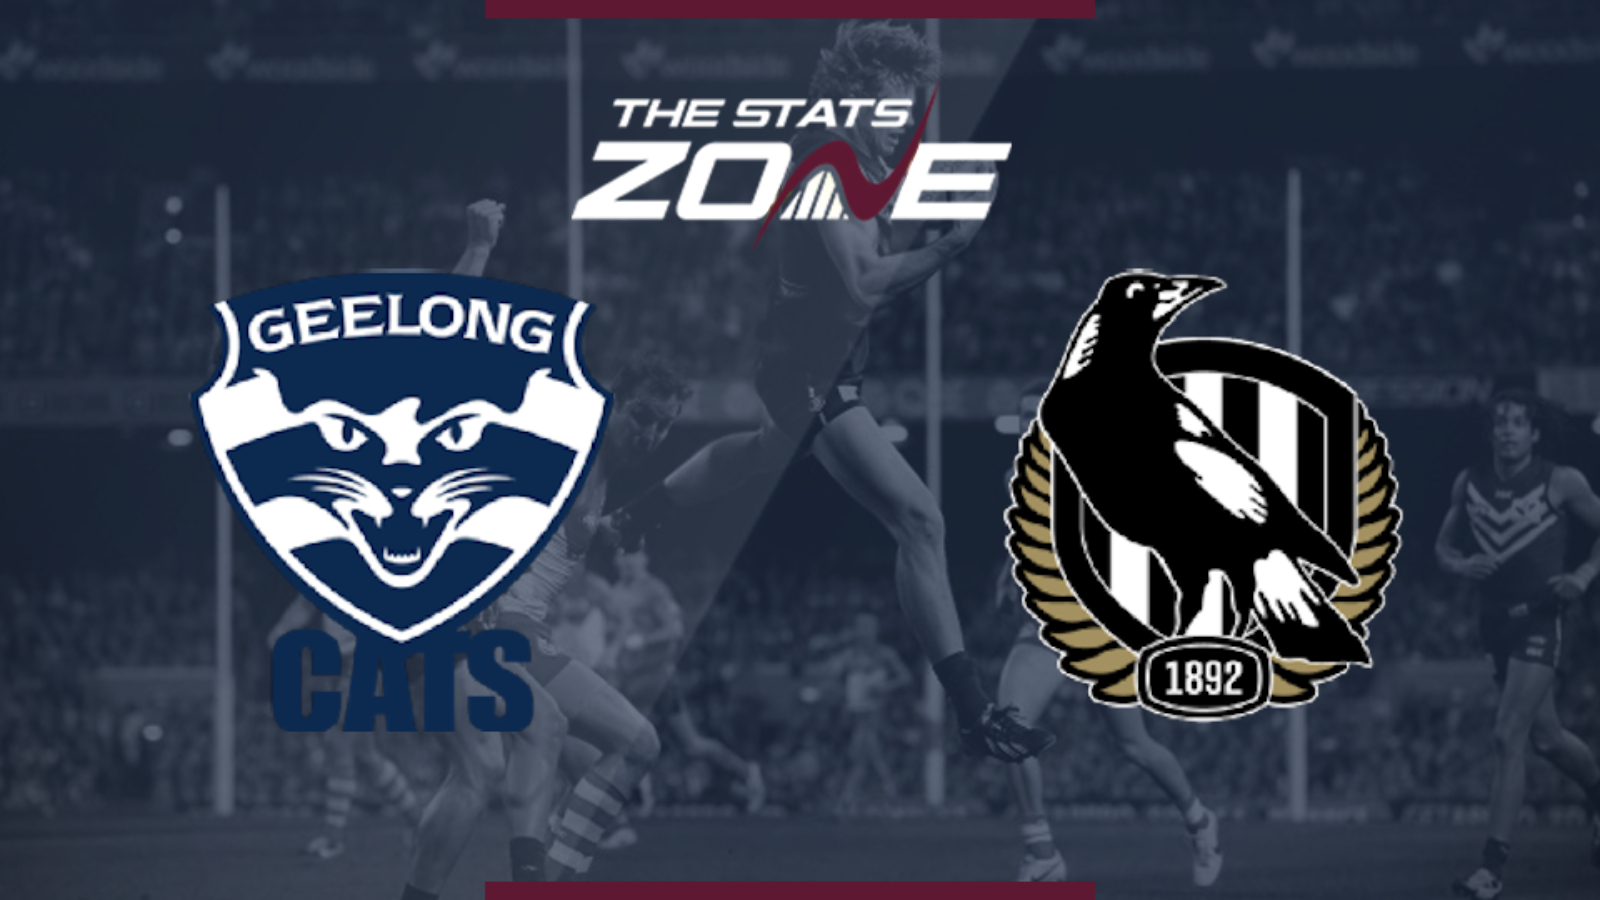 2019 Afl Geelong Cats Vs Collingwood Magpies Preview Prediction The Stats Zone